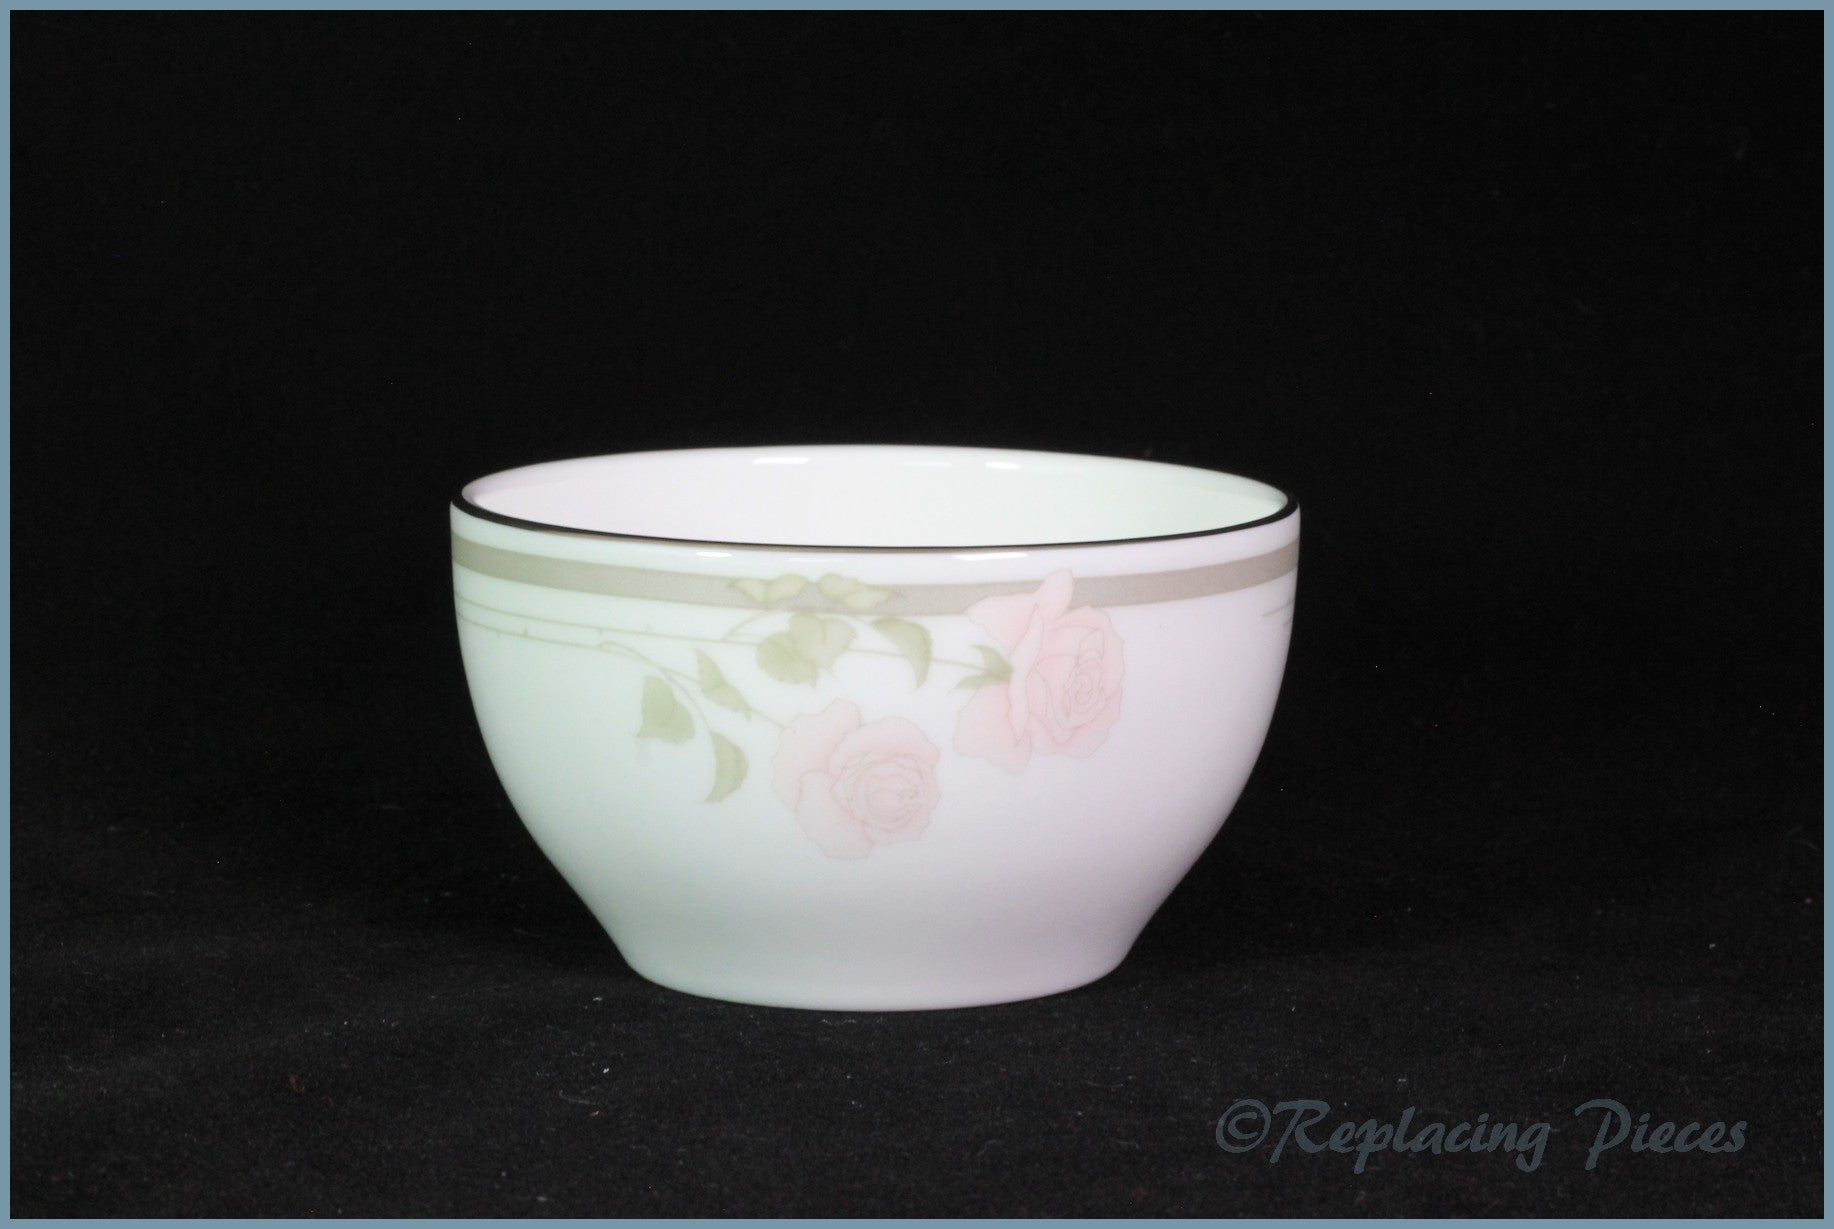 Royal Doulton - Twilight Rose (H5096) - Sugar Bowl (Non-Footed)